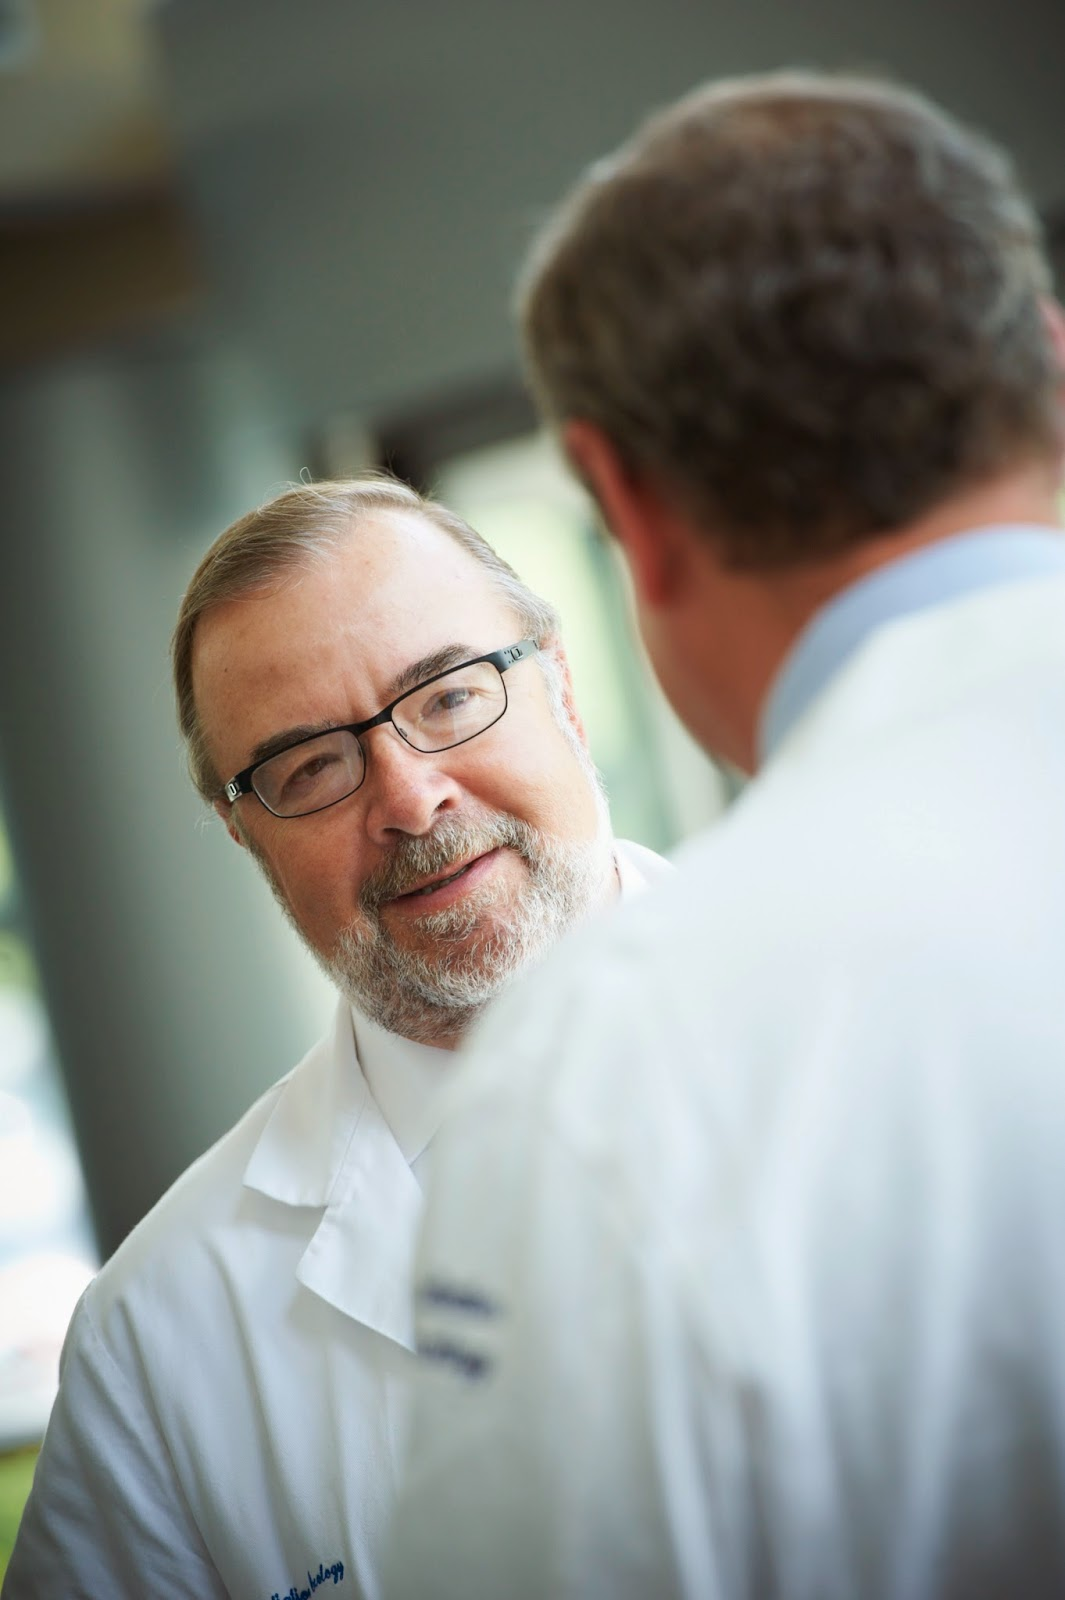 Dr. Rate Doylestown Radiation Oncology Penn